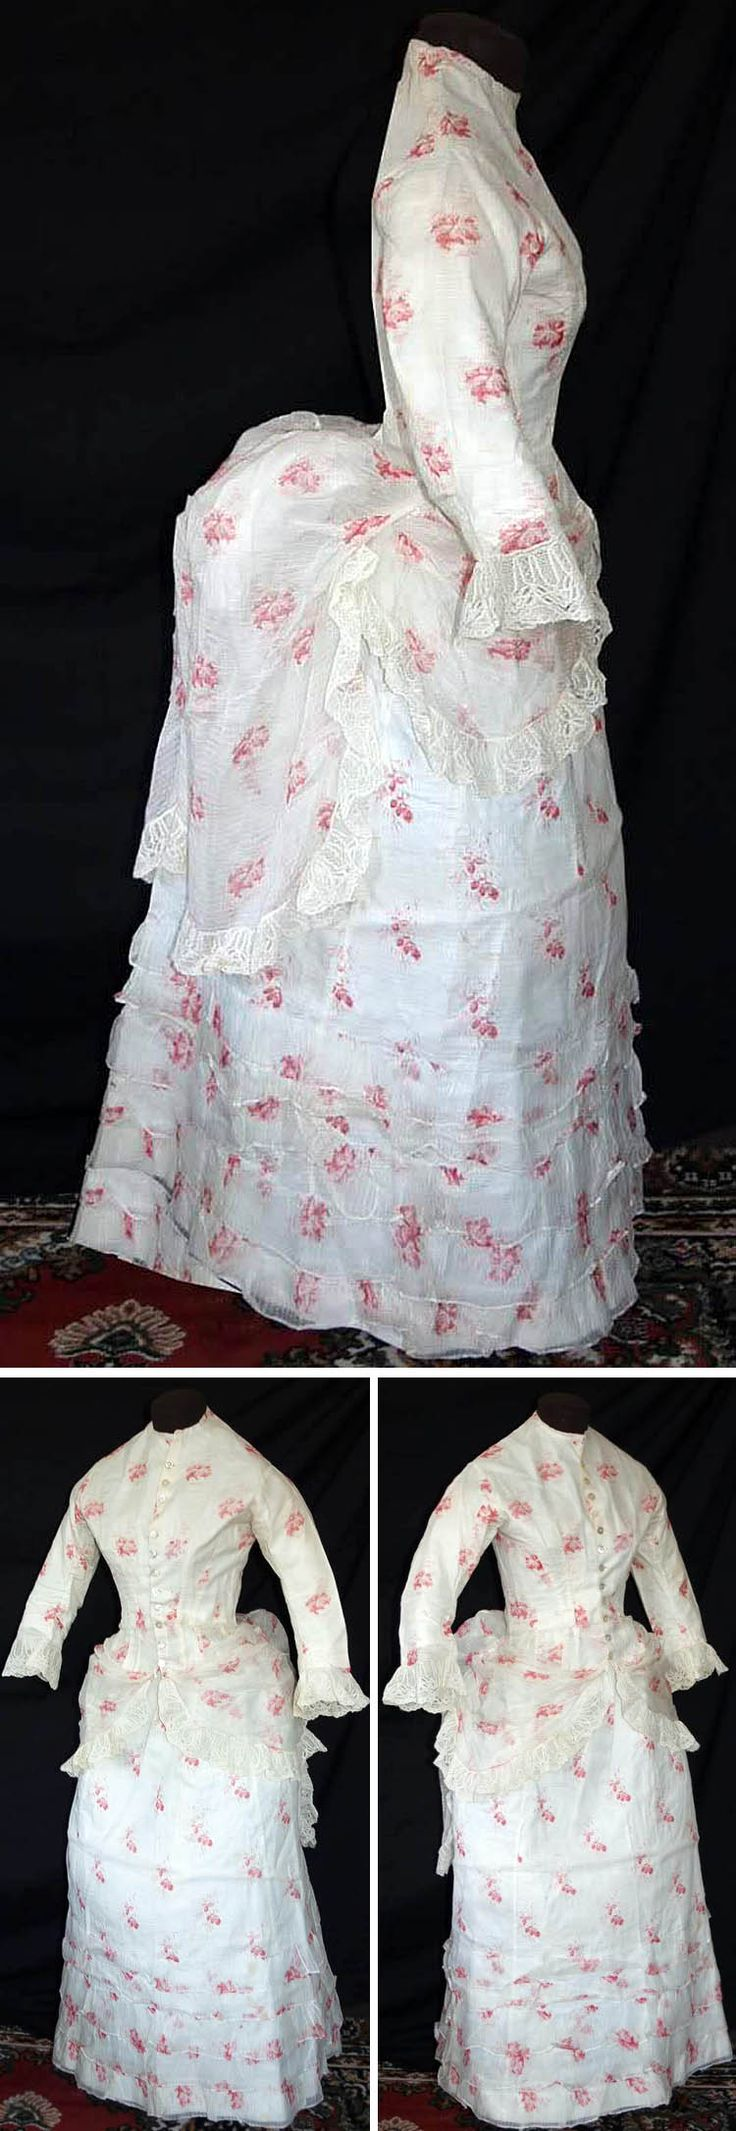 1870s summer dress of striped white cotton with pink floral print. Long Polonaise  bodice has small stand-up collar and loosely fitted sleeves with flared Alençon lace cuffs. Bottom hem also trimmed with white Alençon floral lace. Closes in front with 12 mother of pearl buttons and is lined with white cotton. Back of skirt is tightly pleated to accommodate bustle. Bodice drapes over skirt to give apron effect. Skirt has 5 rows of ruffles and is lined with white cotton. e-warrior/eBay